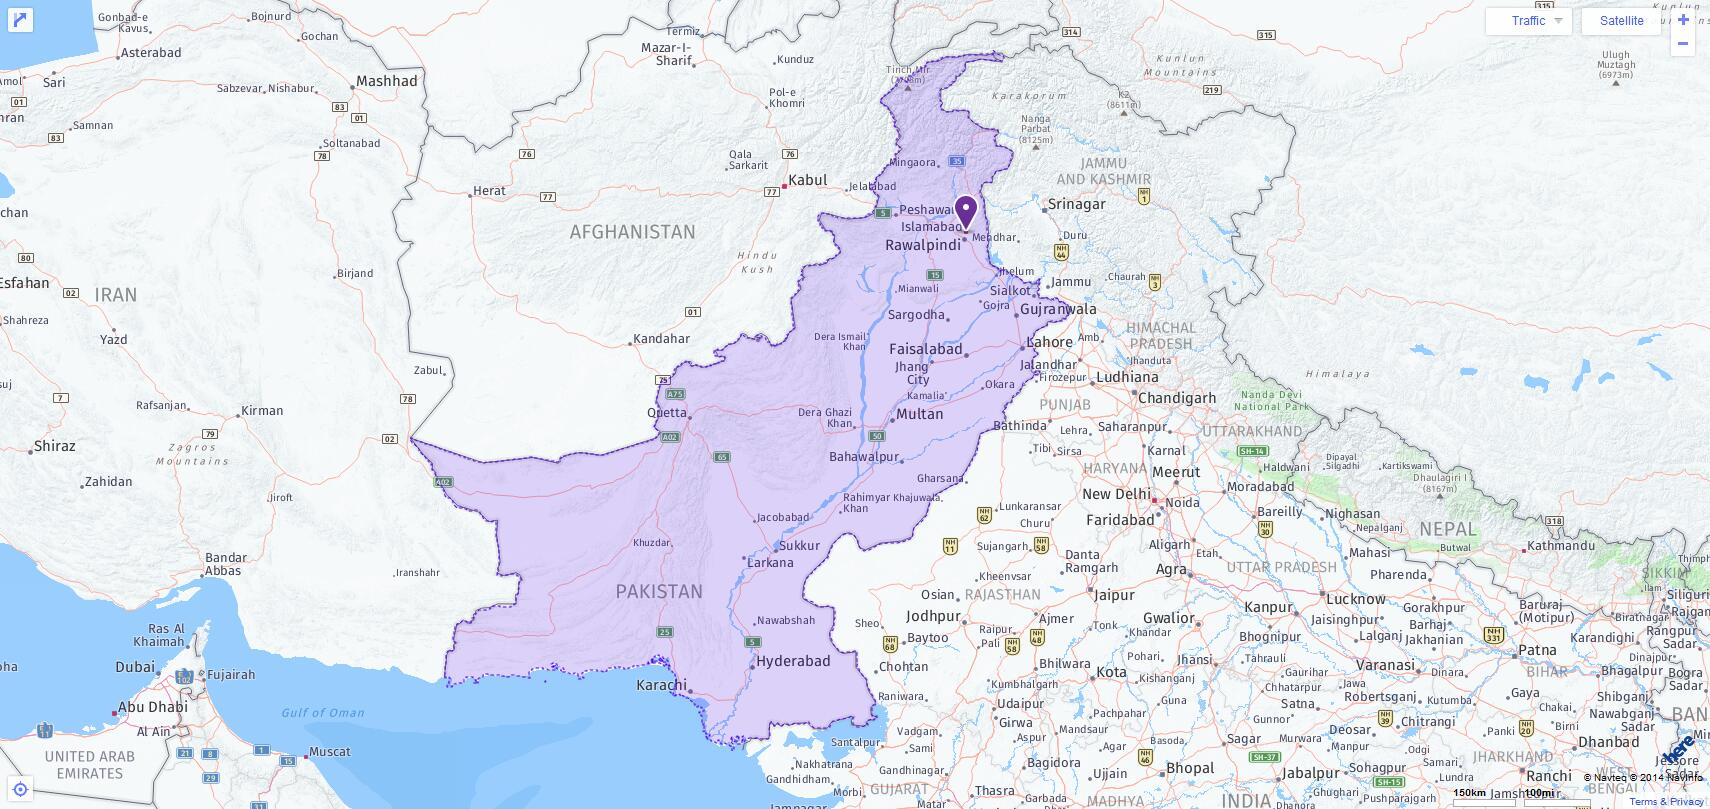 ACT Test Centers and Dates in Pakistan